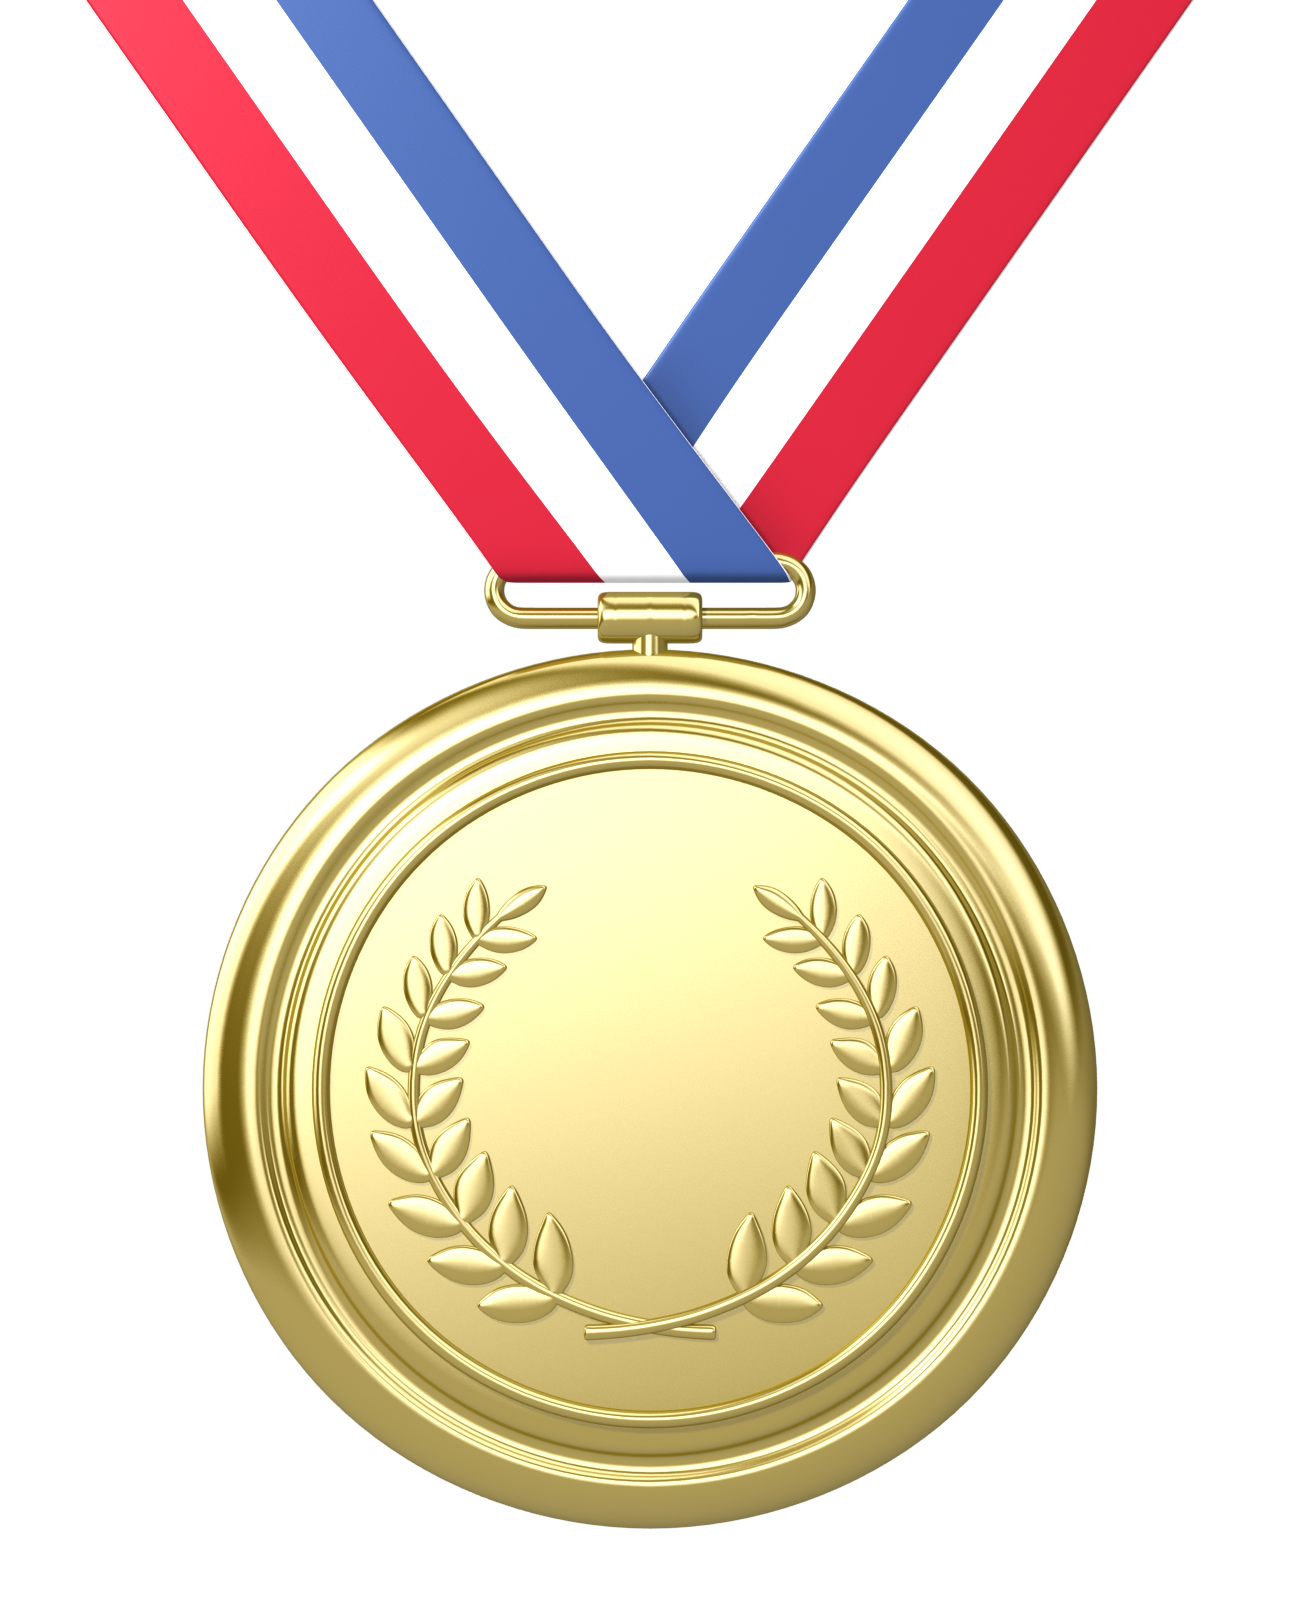 7 Personal Gold Medal Achievements Clip art, Gold, Heart